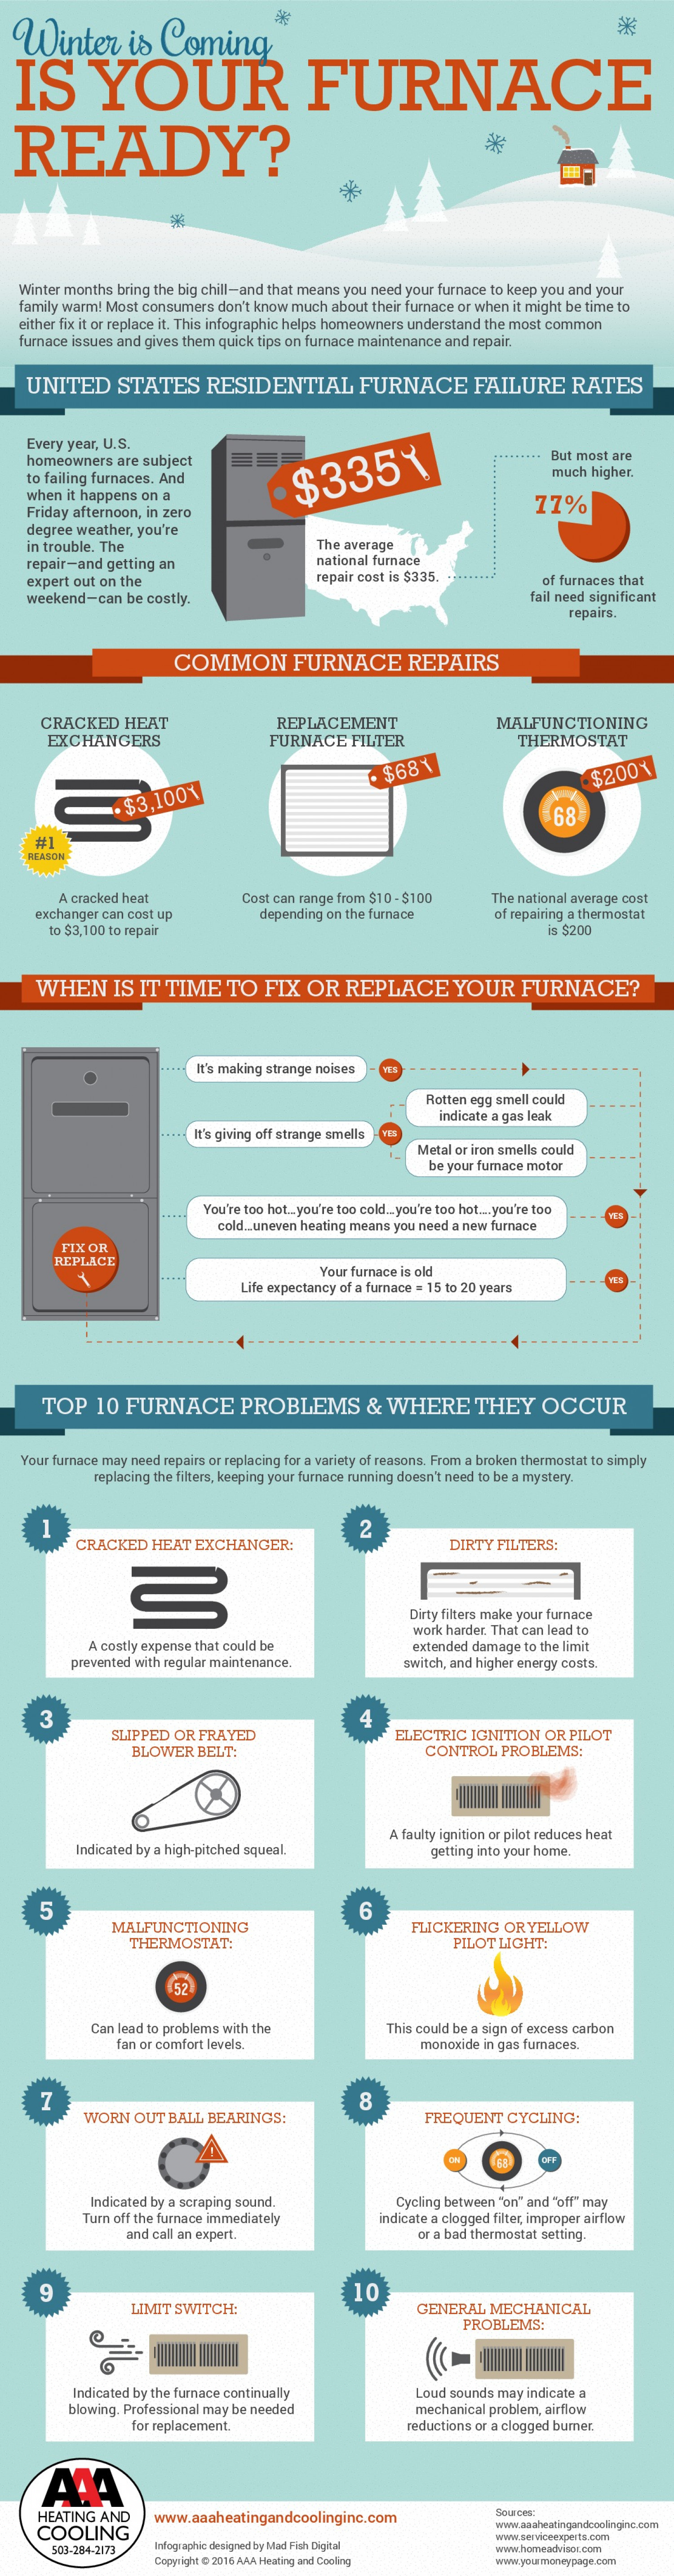 Winter is Coming - Is Your Furnace Ready?  Infographic